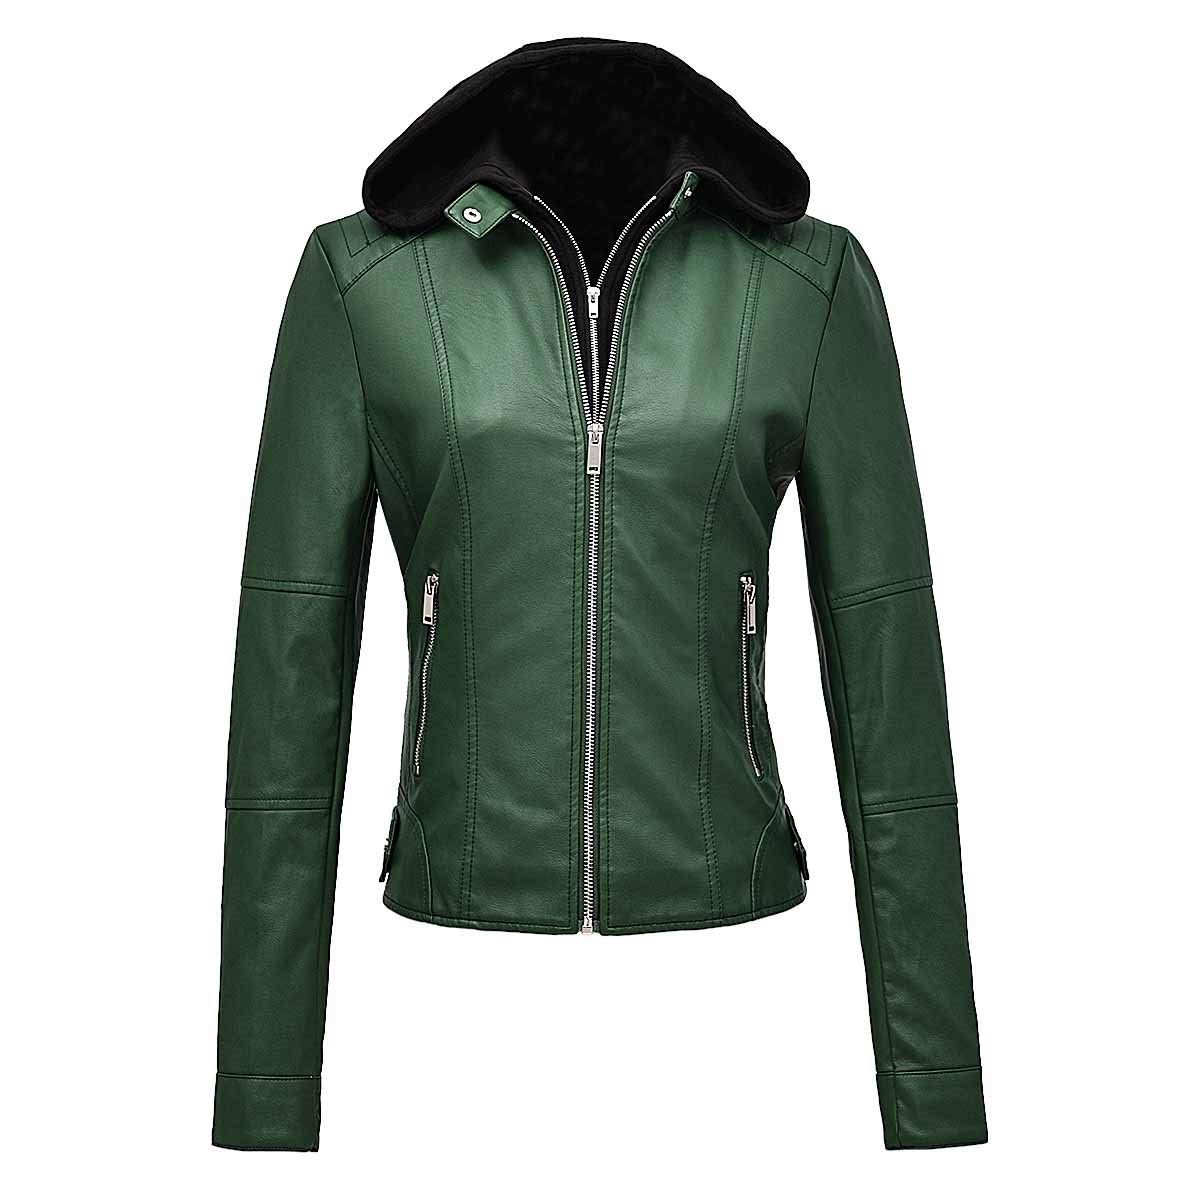 FEICUI Women's Removable Hooded Faux Leather Casual Short Jacket Moto Biker Coat (Dark Green, Large) by FEICUI